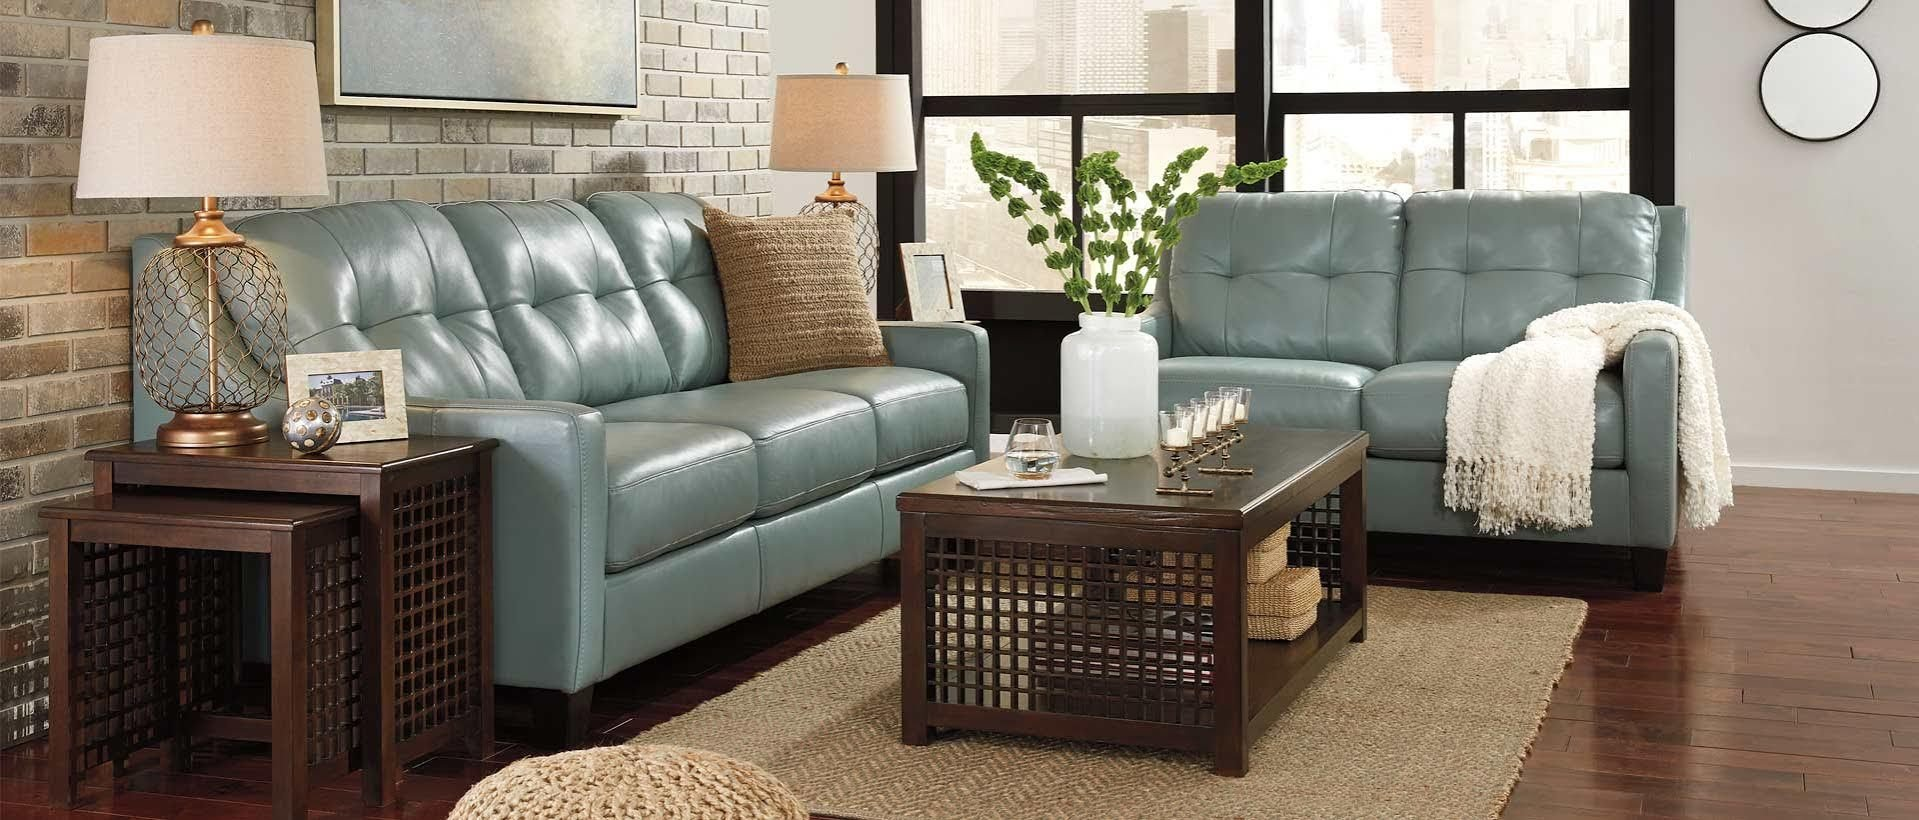 Best Leon Furniture Store In Phoenix And Glendale Buy Quality Furniture With Pictures